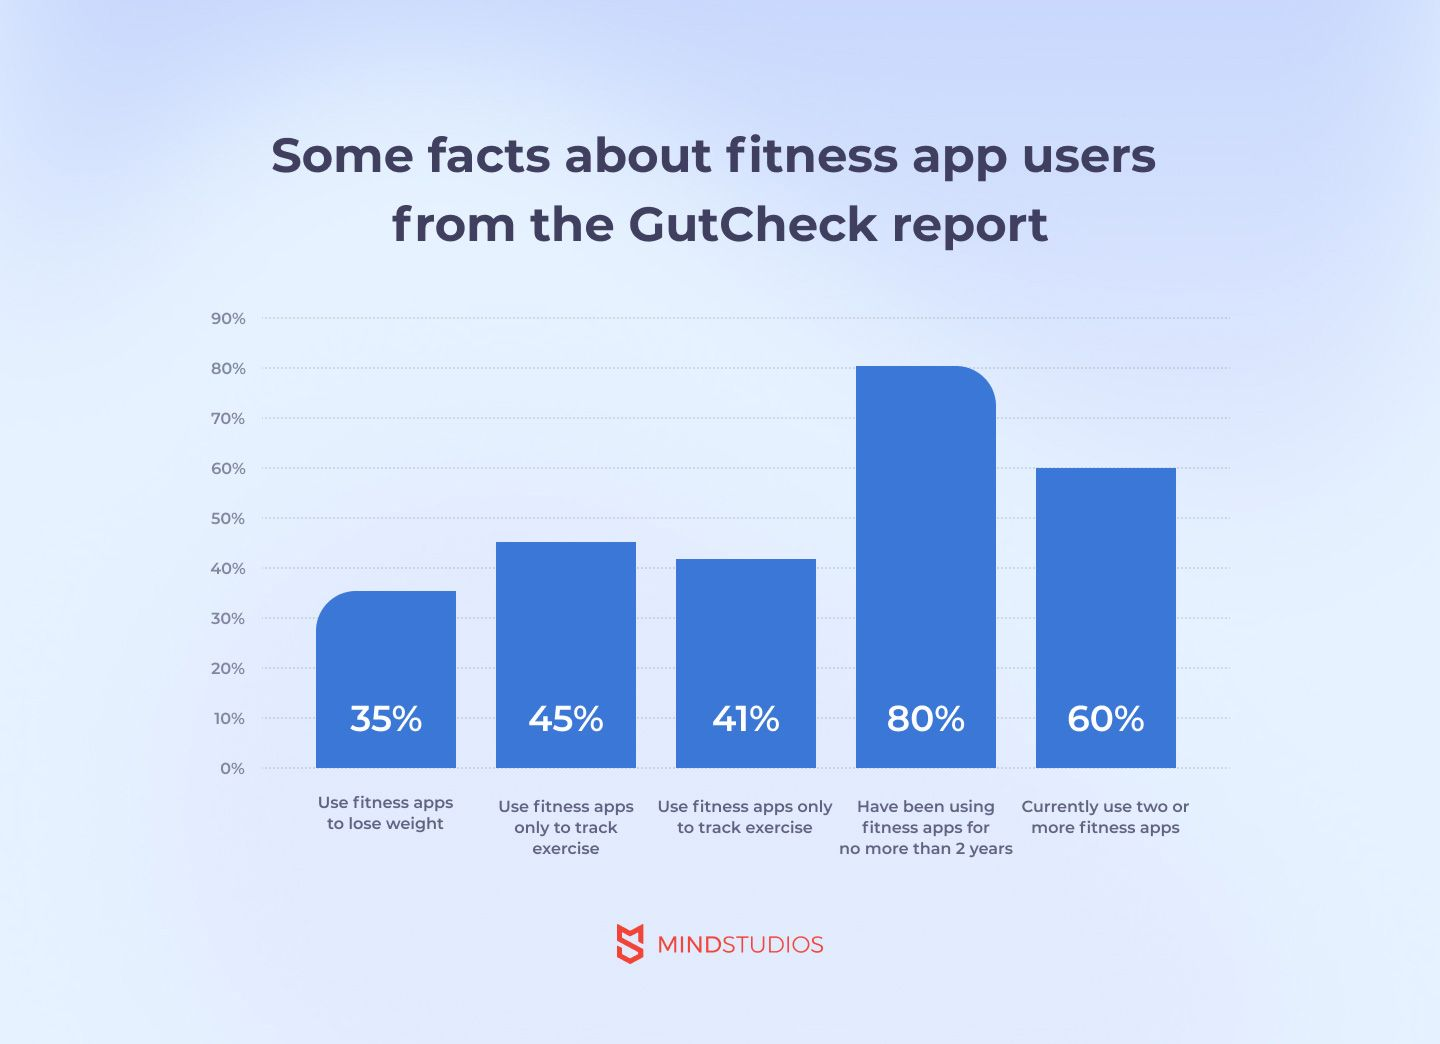 Some facts about fitness app